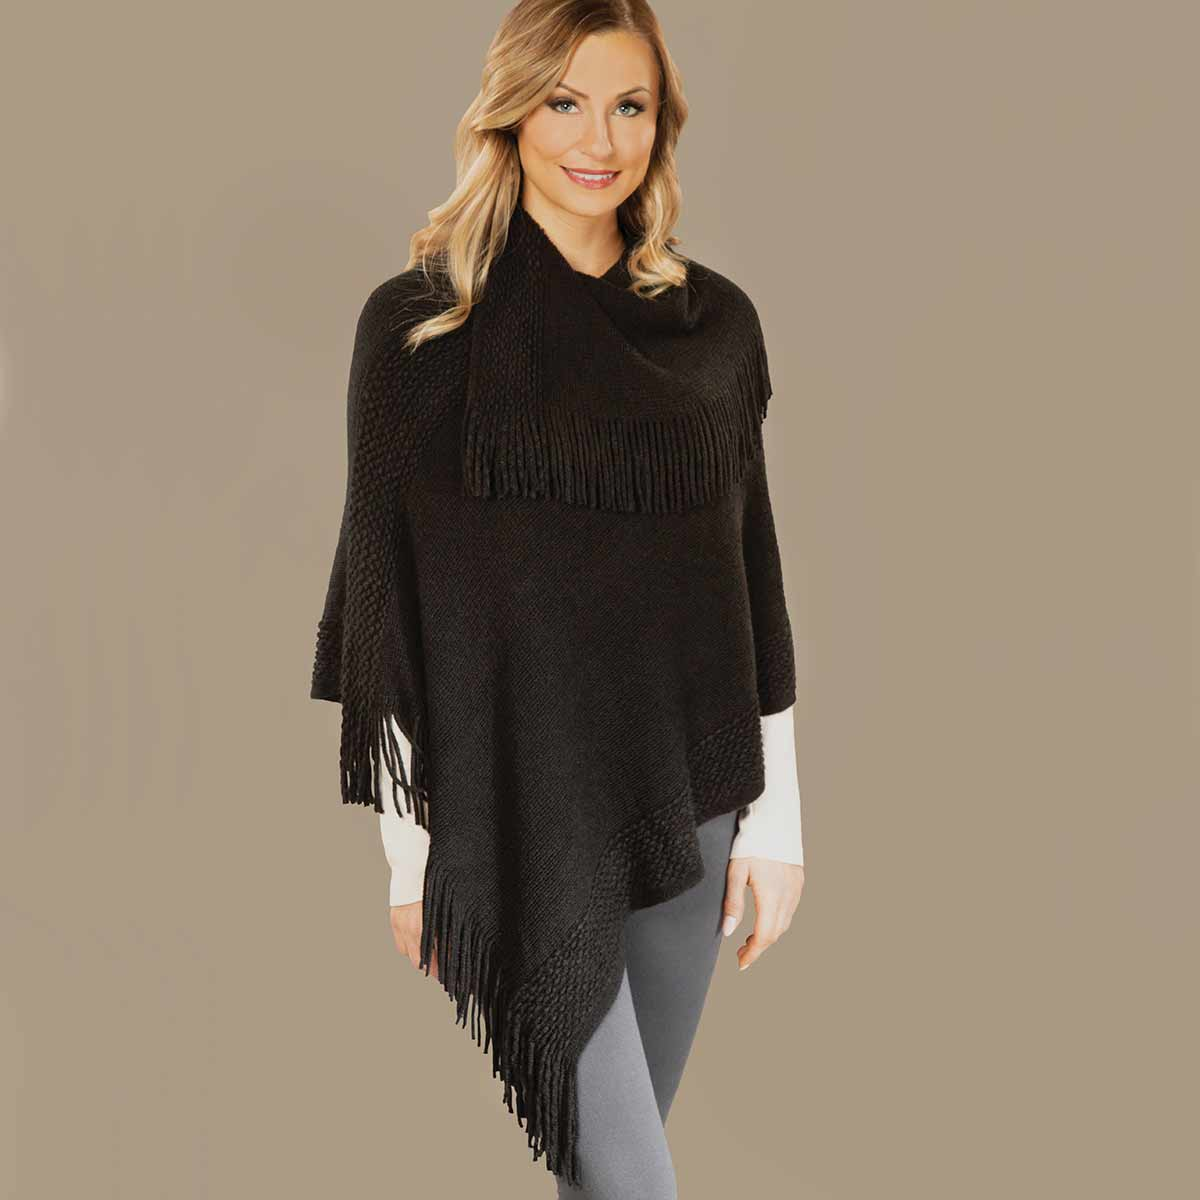 Black Knit Poncho with Collar and Fringe